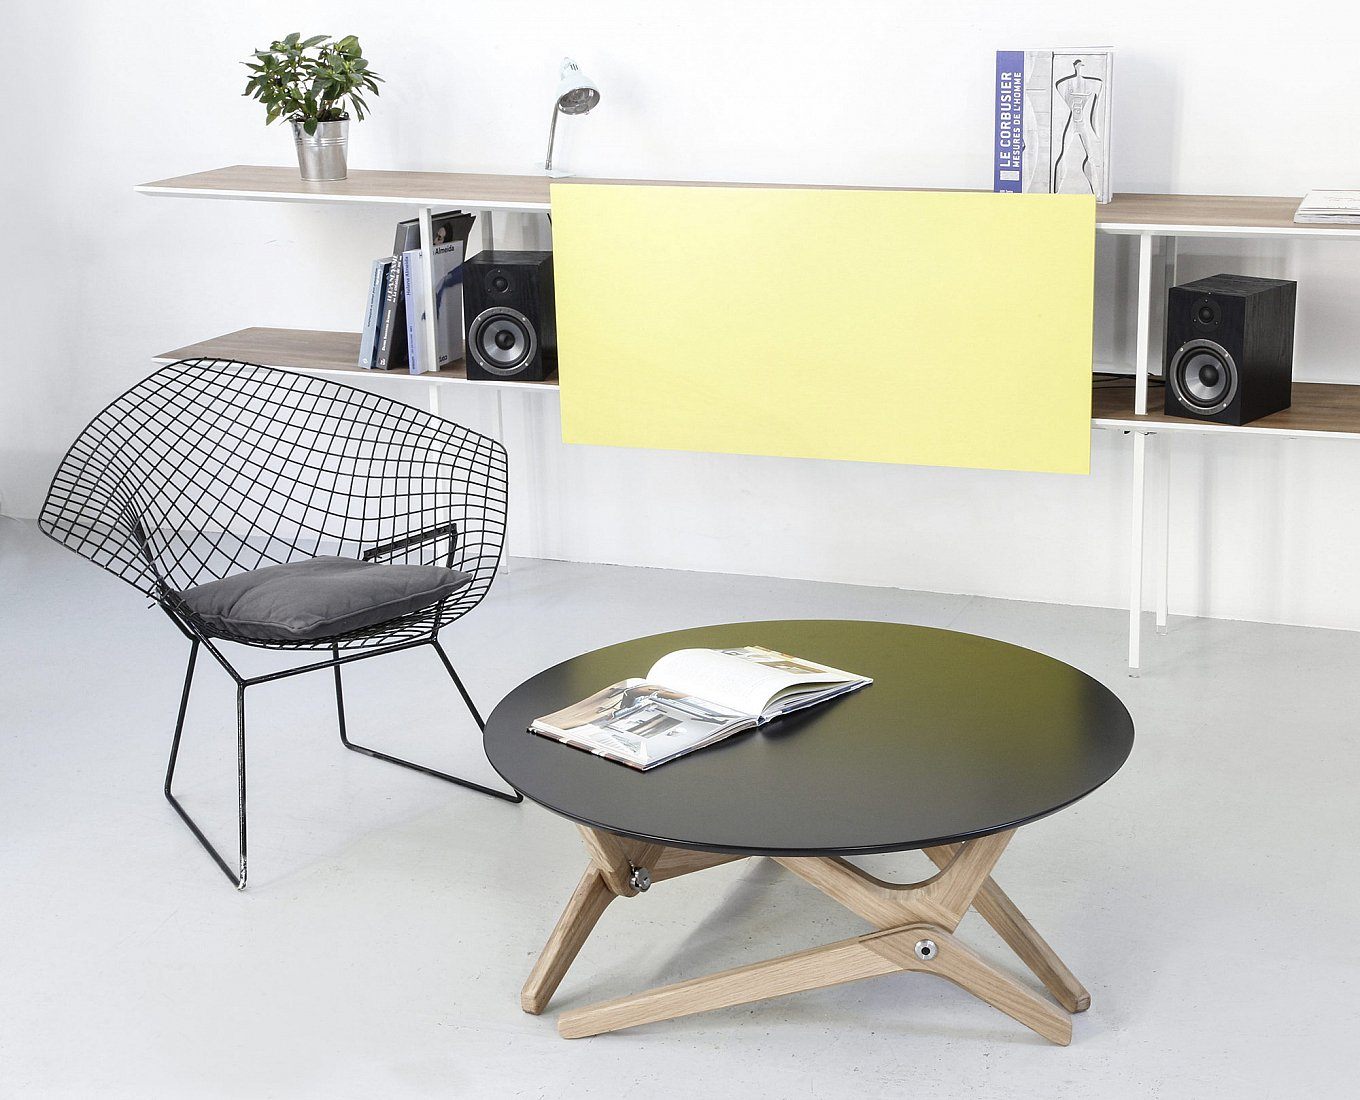 boulon-blanc-transformable-table-gessato-1